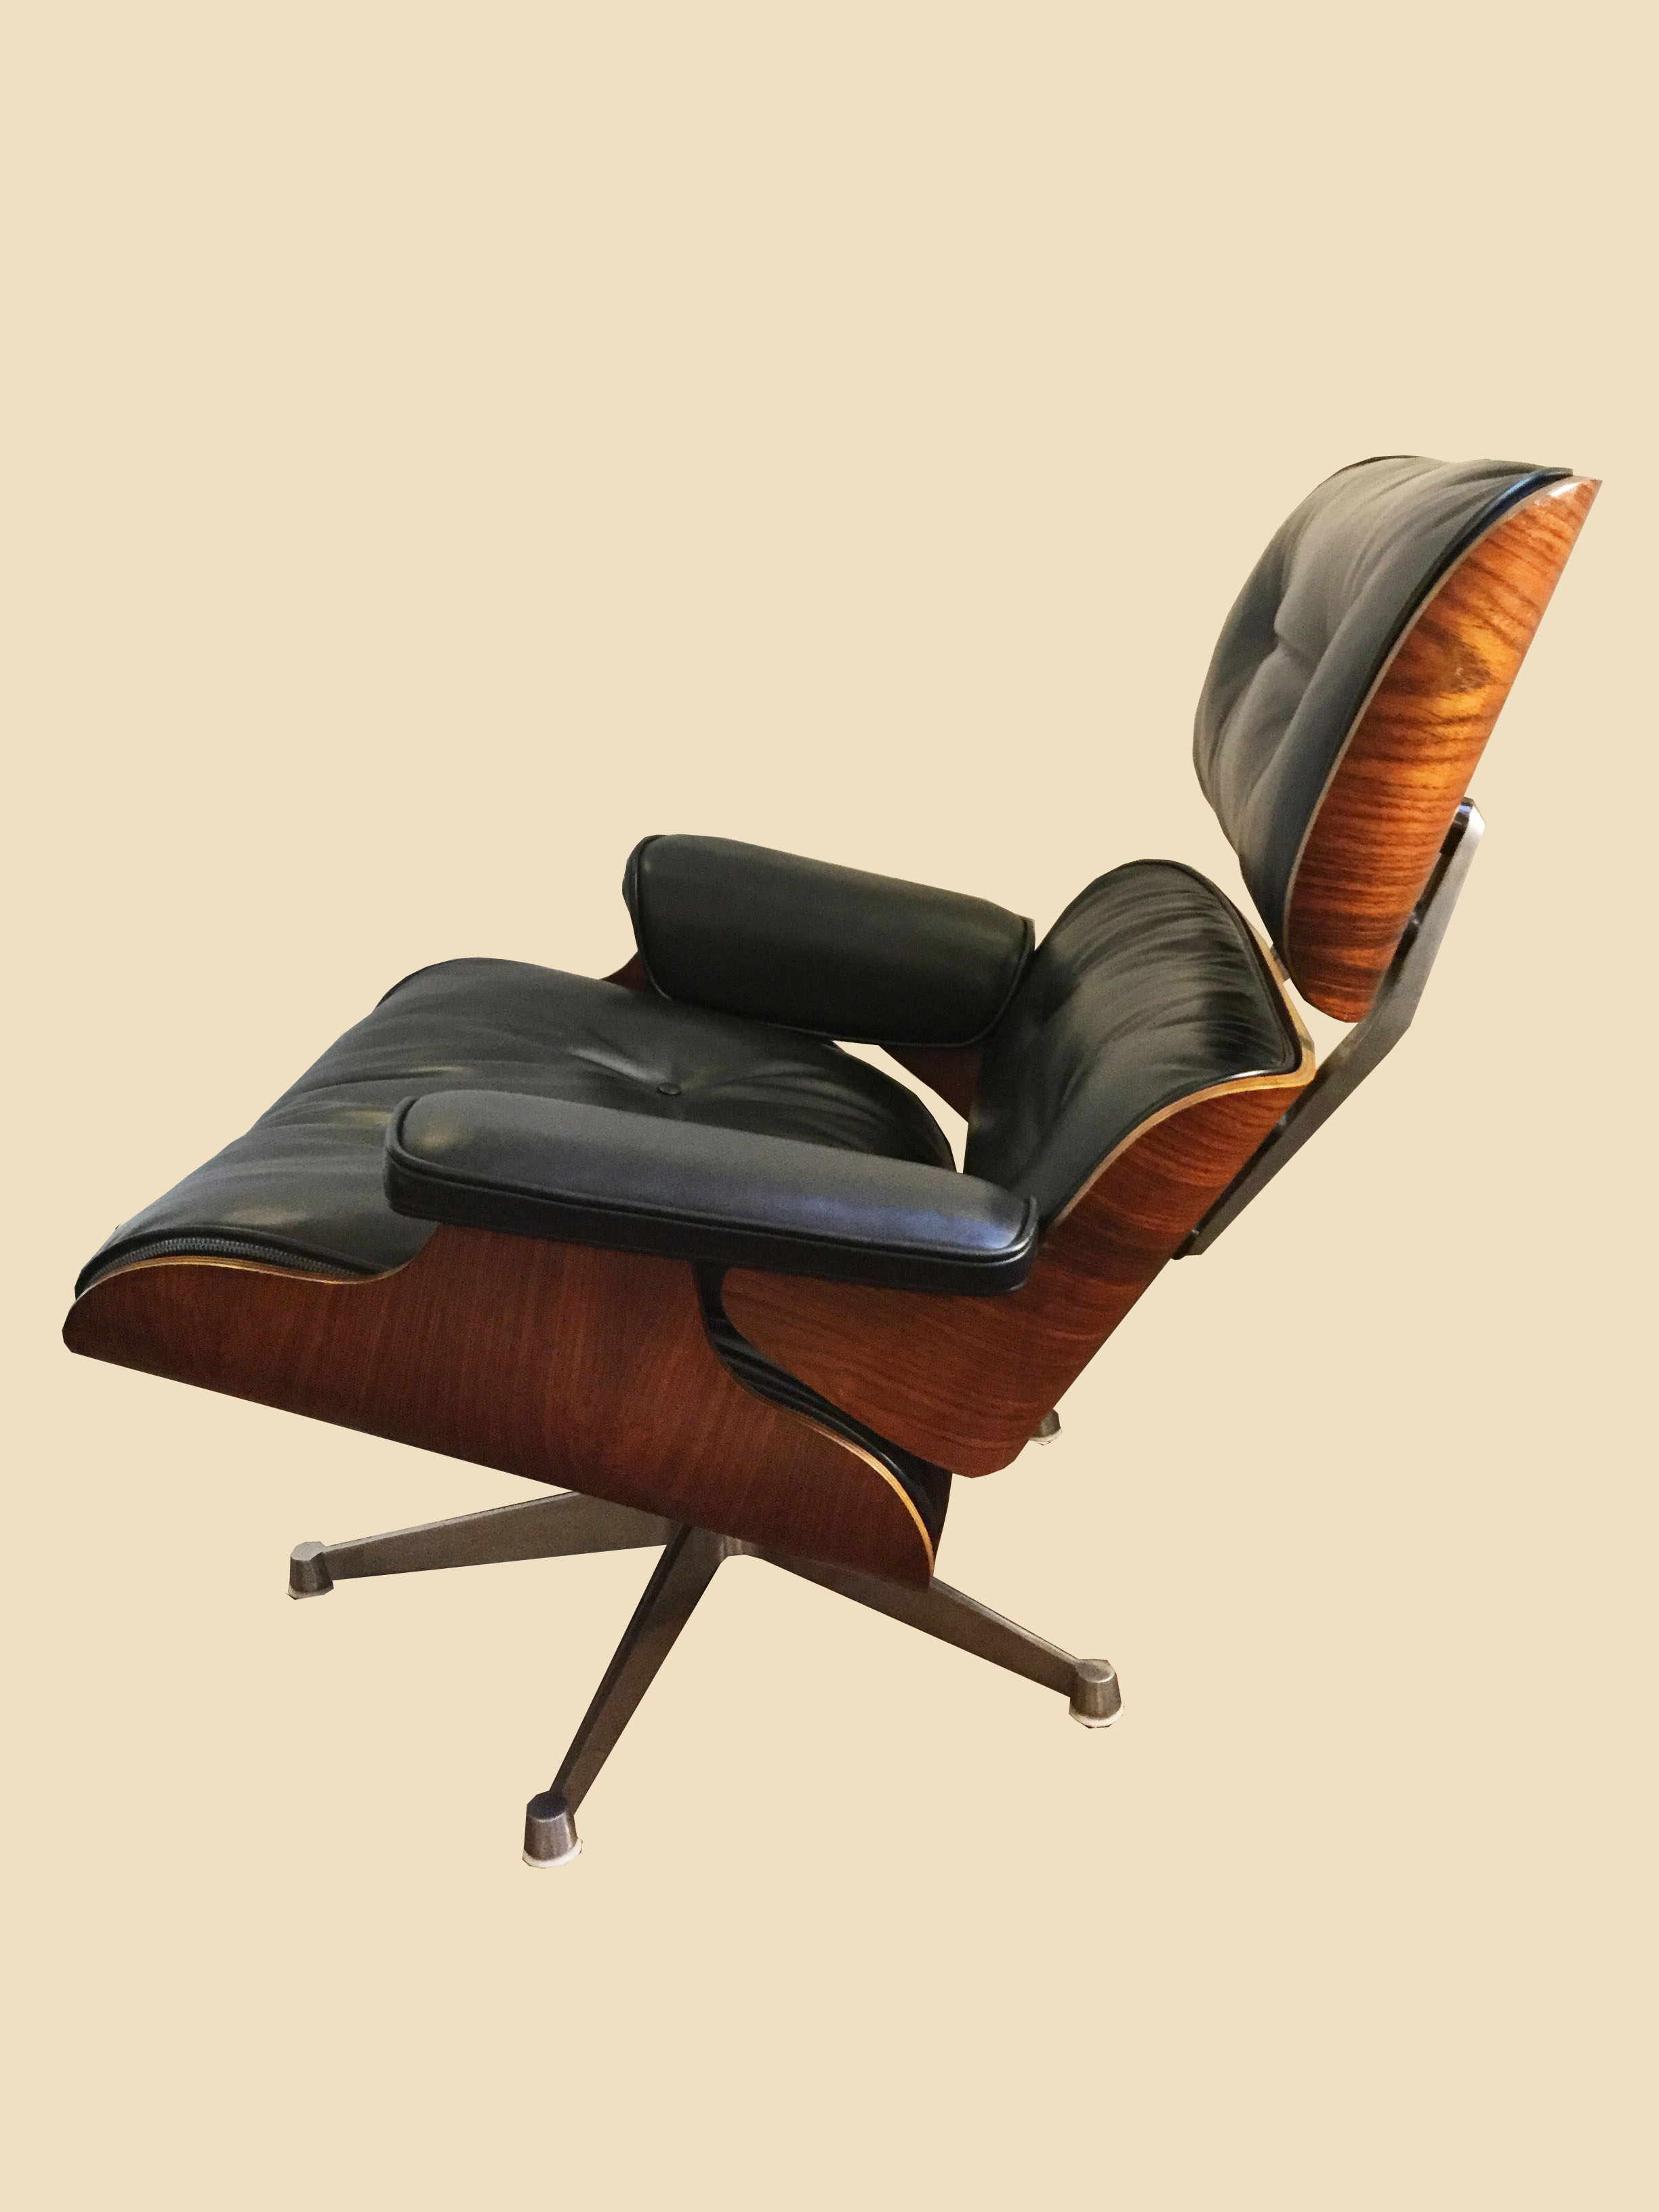 Fauteuil lounge chair et ottoman charles ray eames for Fauteuil eames copie